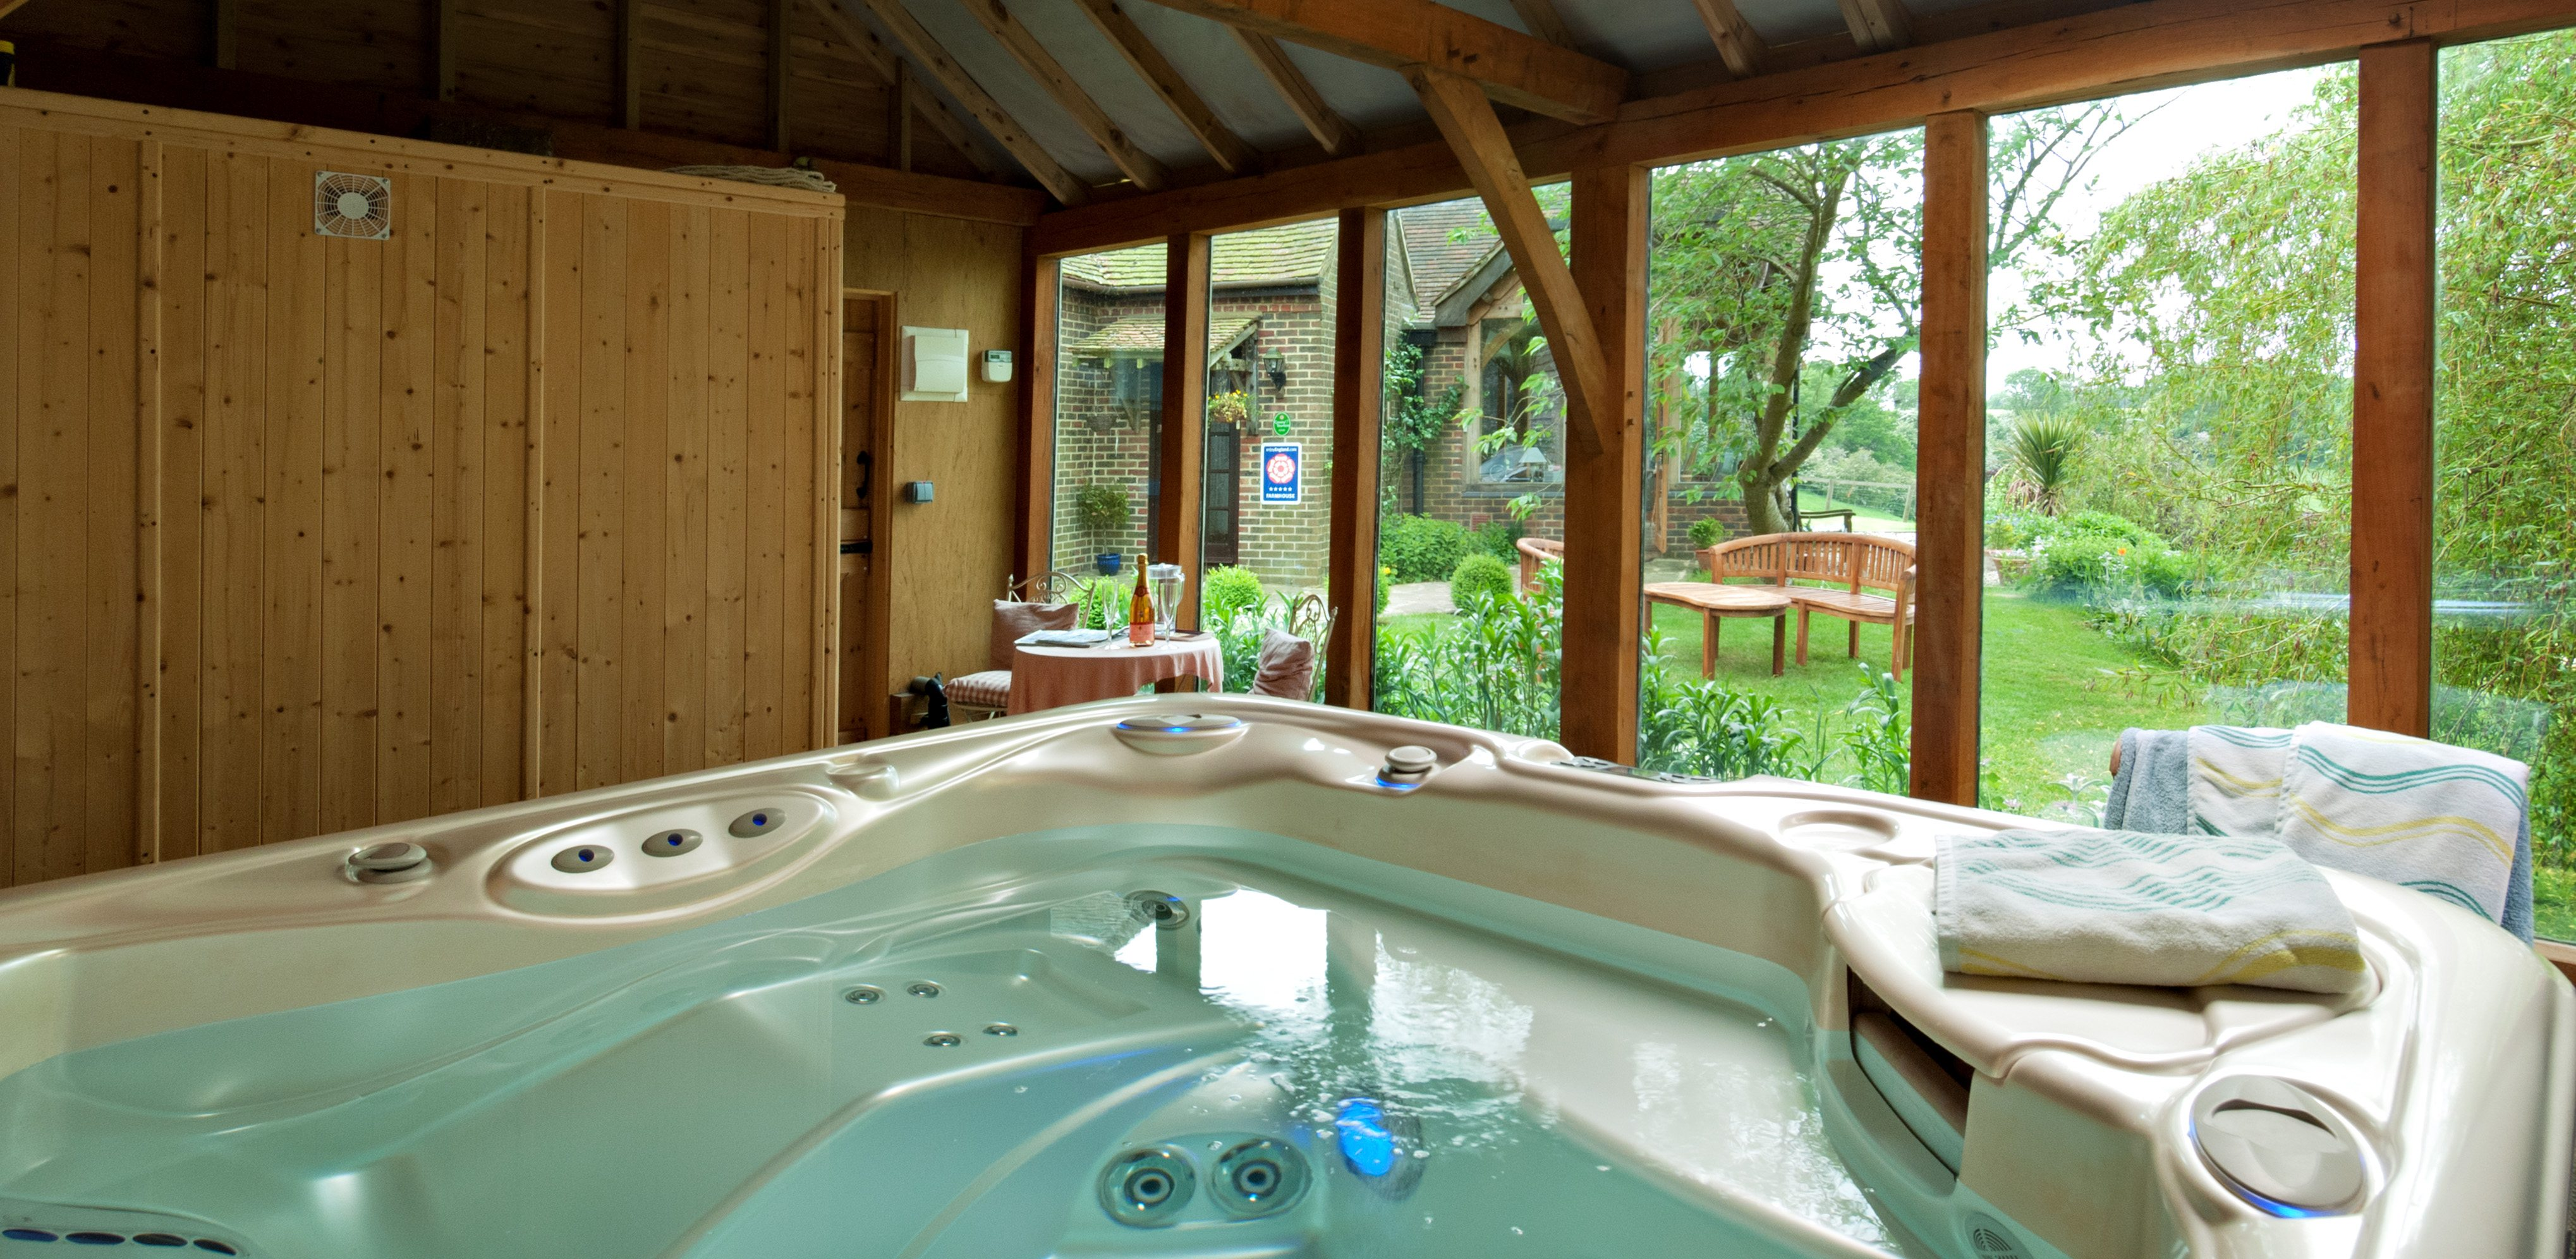 Bed and Breakfast with a hot tub and garden views